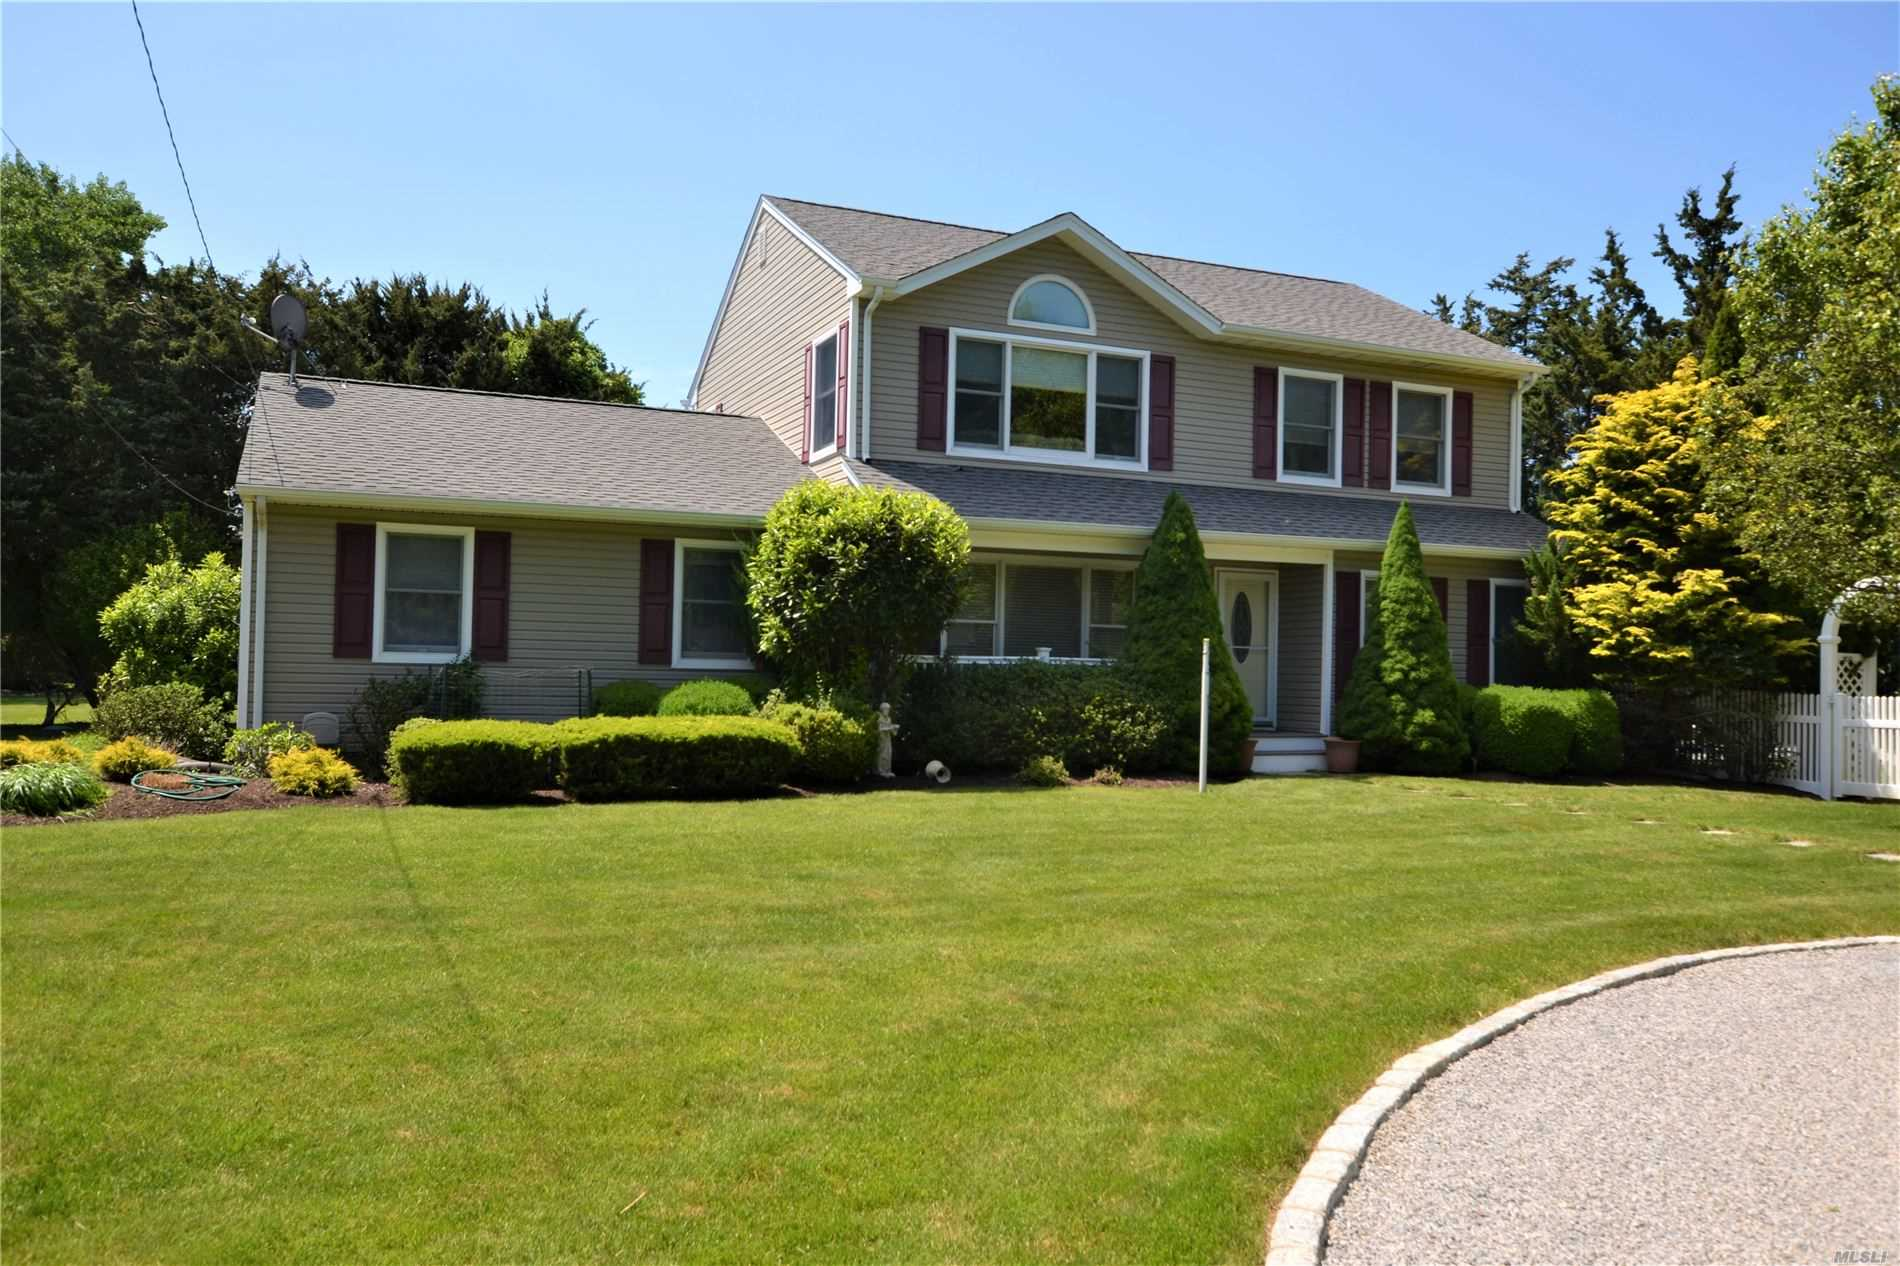 This Turn-Key, South-Of-The-Highway Post Modern, Offers 5 Bedrooms, 4 Full Baths, Eik, Formal Dining Room, Living Room, Mud Room And Finished Basement. The Private Grounds Offer An In-Ground Pool And Mature Landscaping. Set On Desirable Tanners Neck Lane, A Short Distance To Main Street And Village Beaches. This Home Is A Great Value For Under 1 Million.